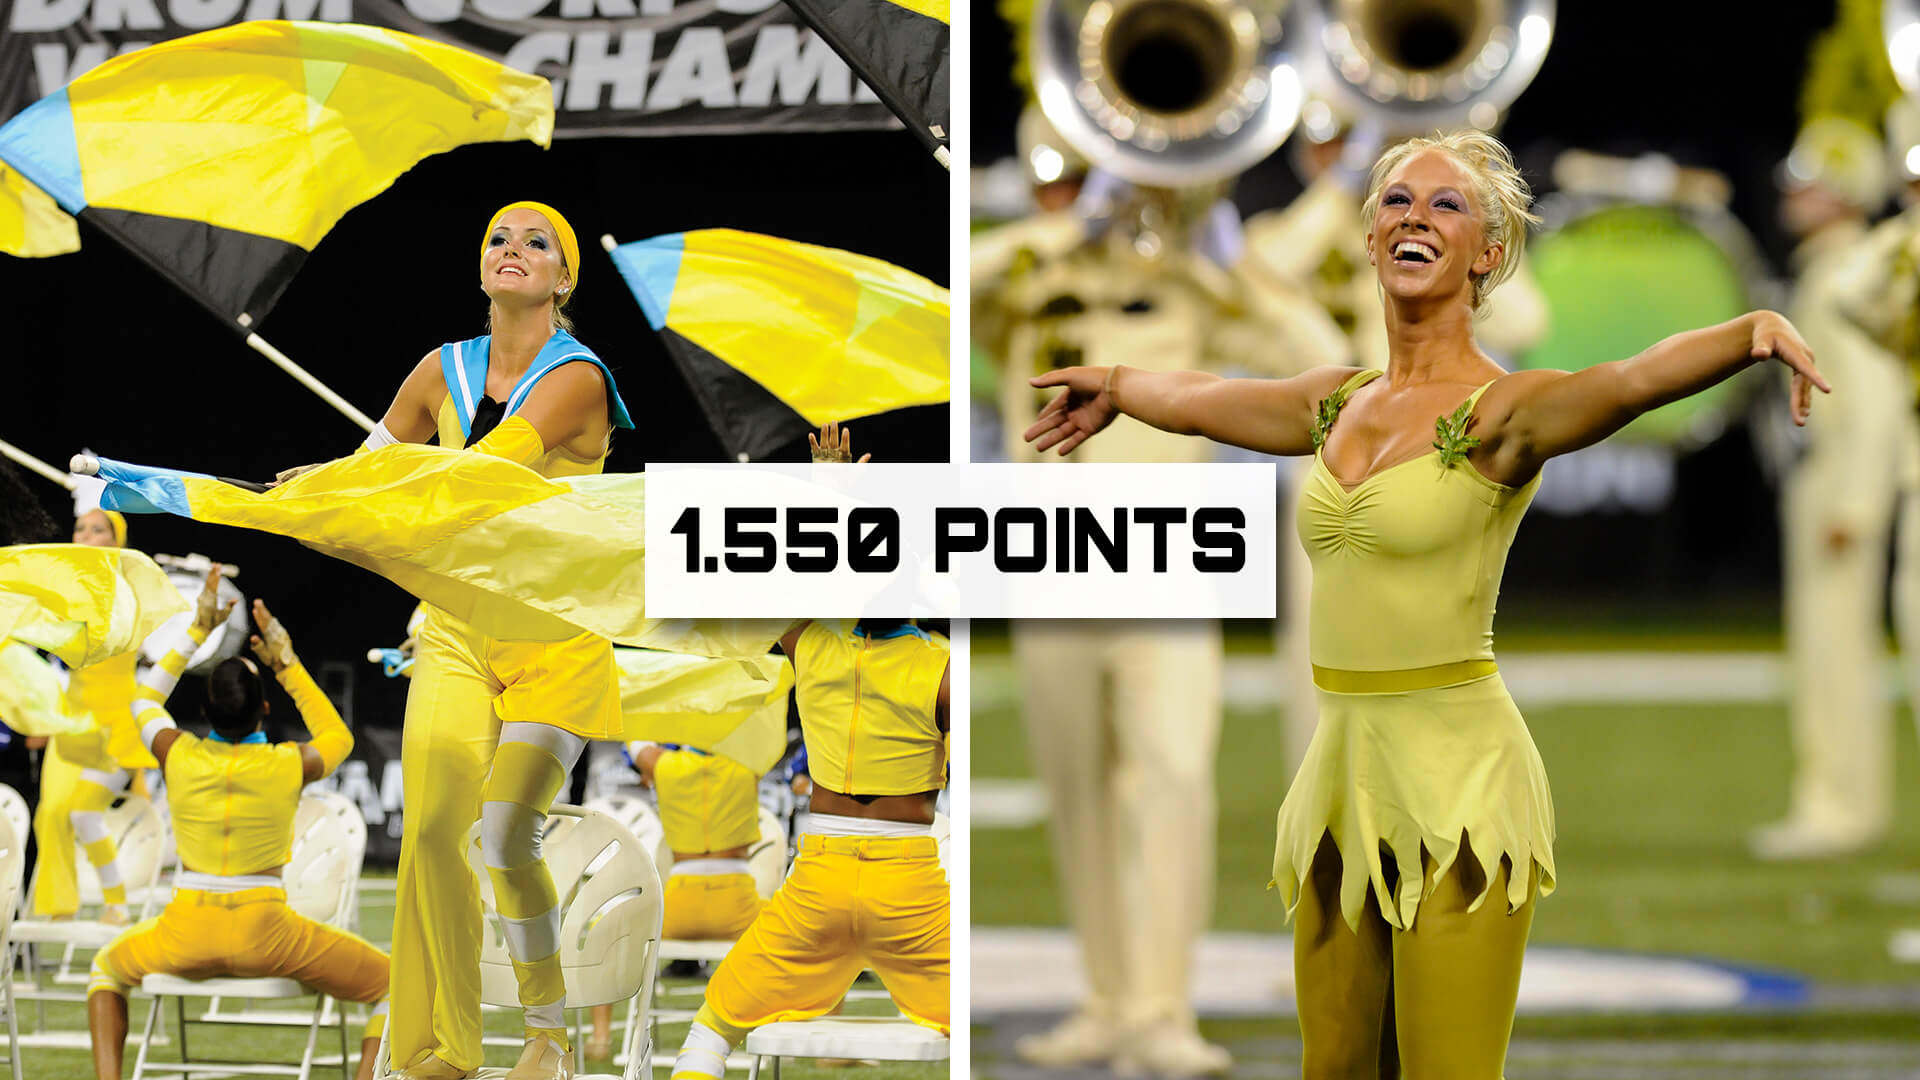 1.400 points - 2009